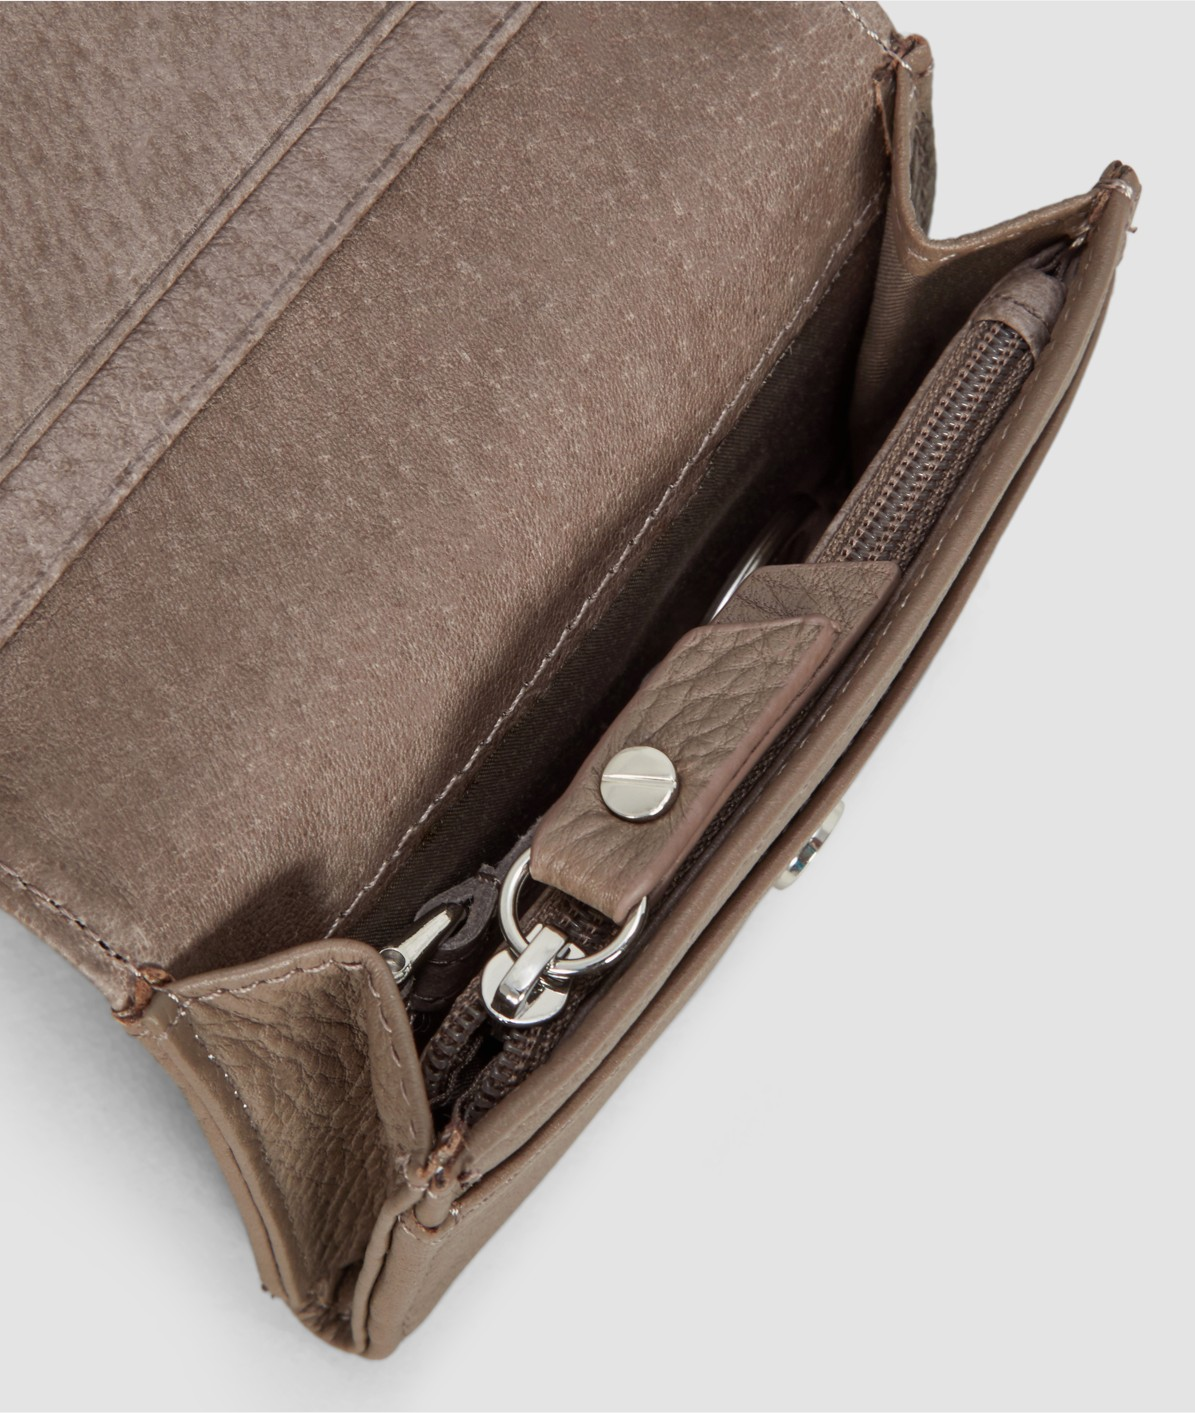 Purse with a key ring  from liebeskind